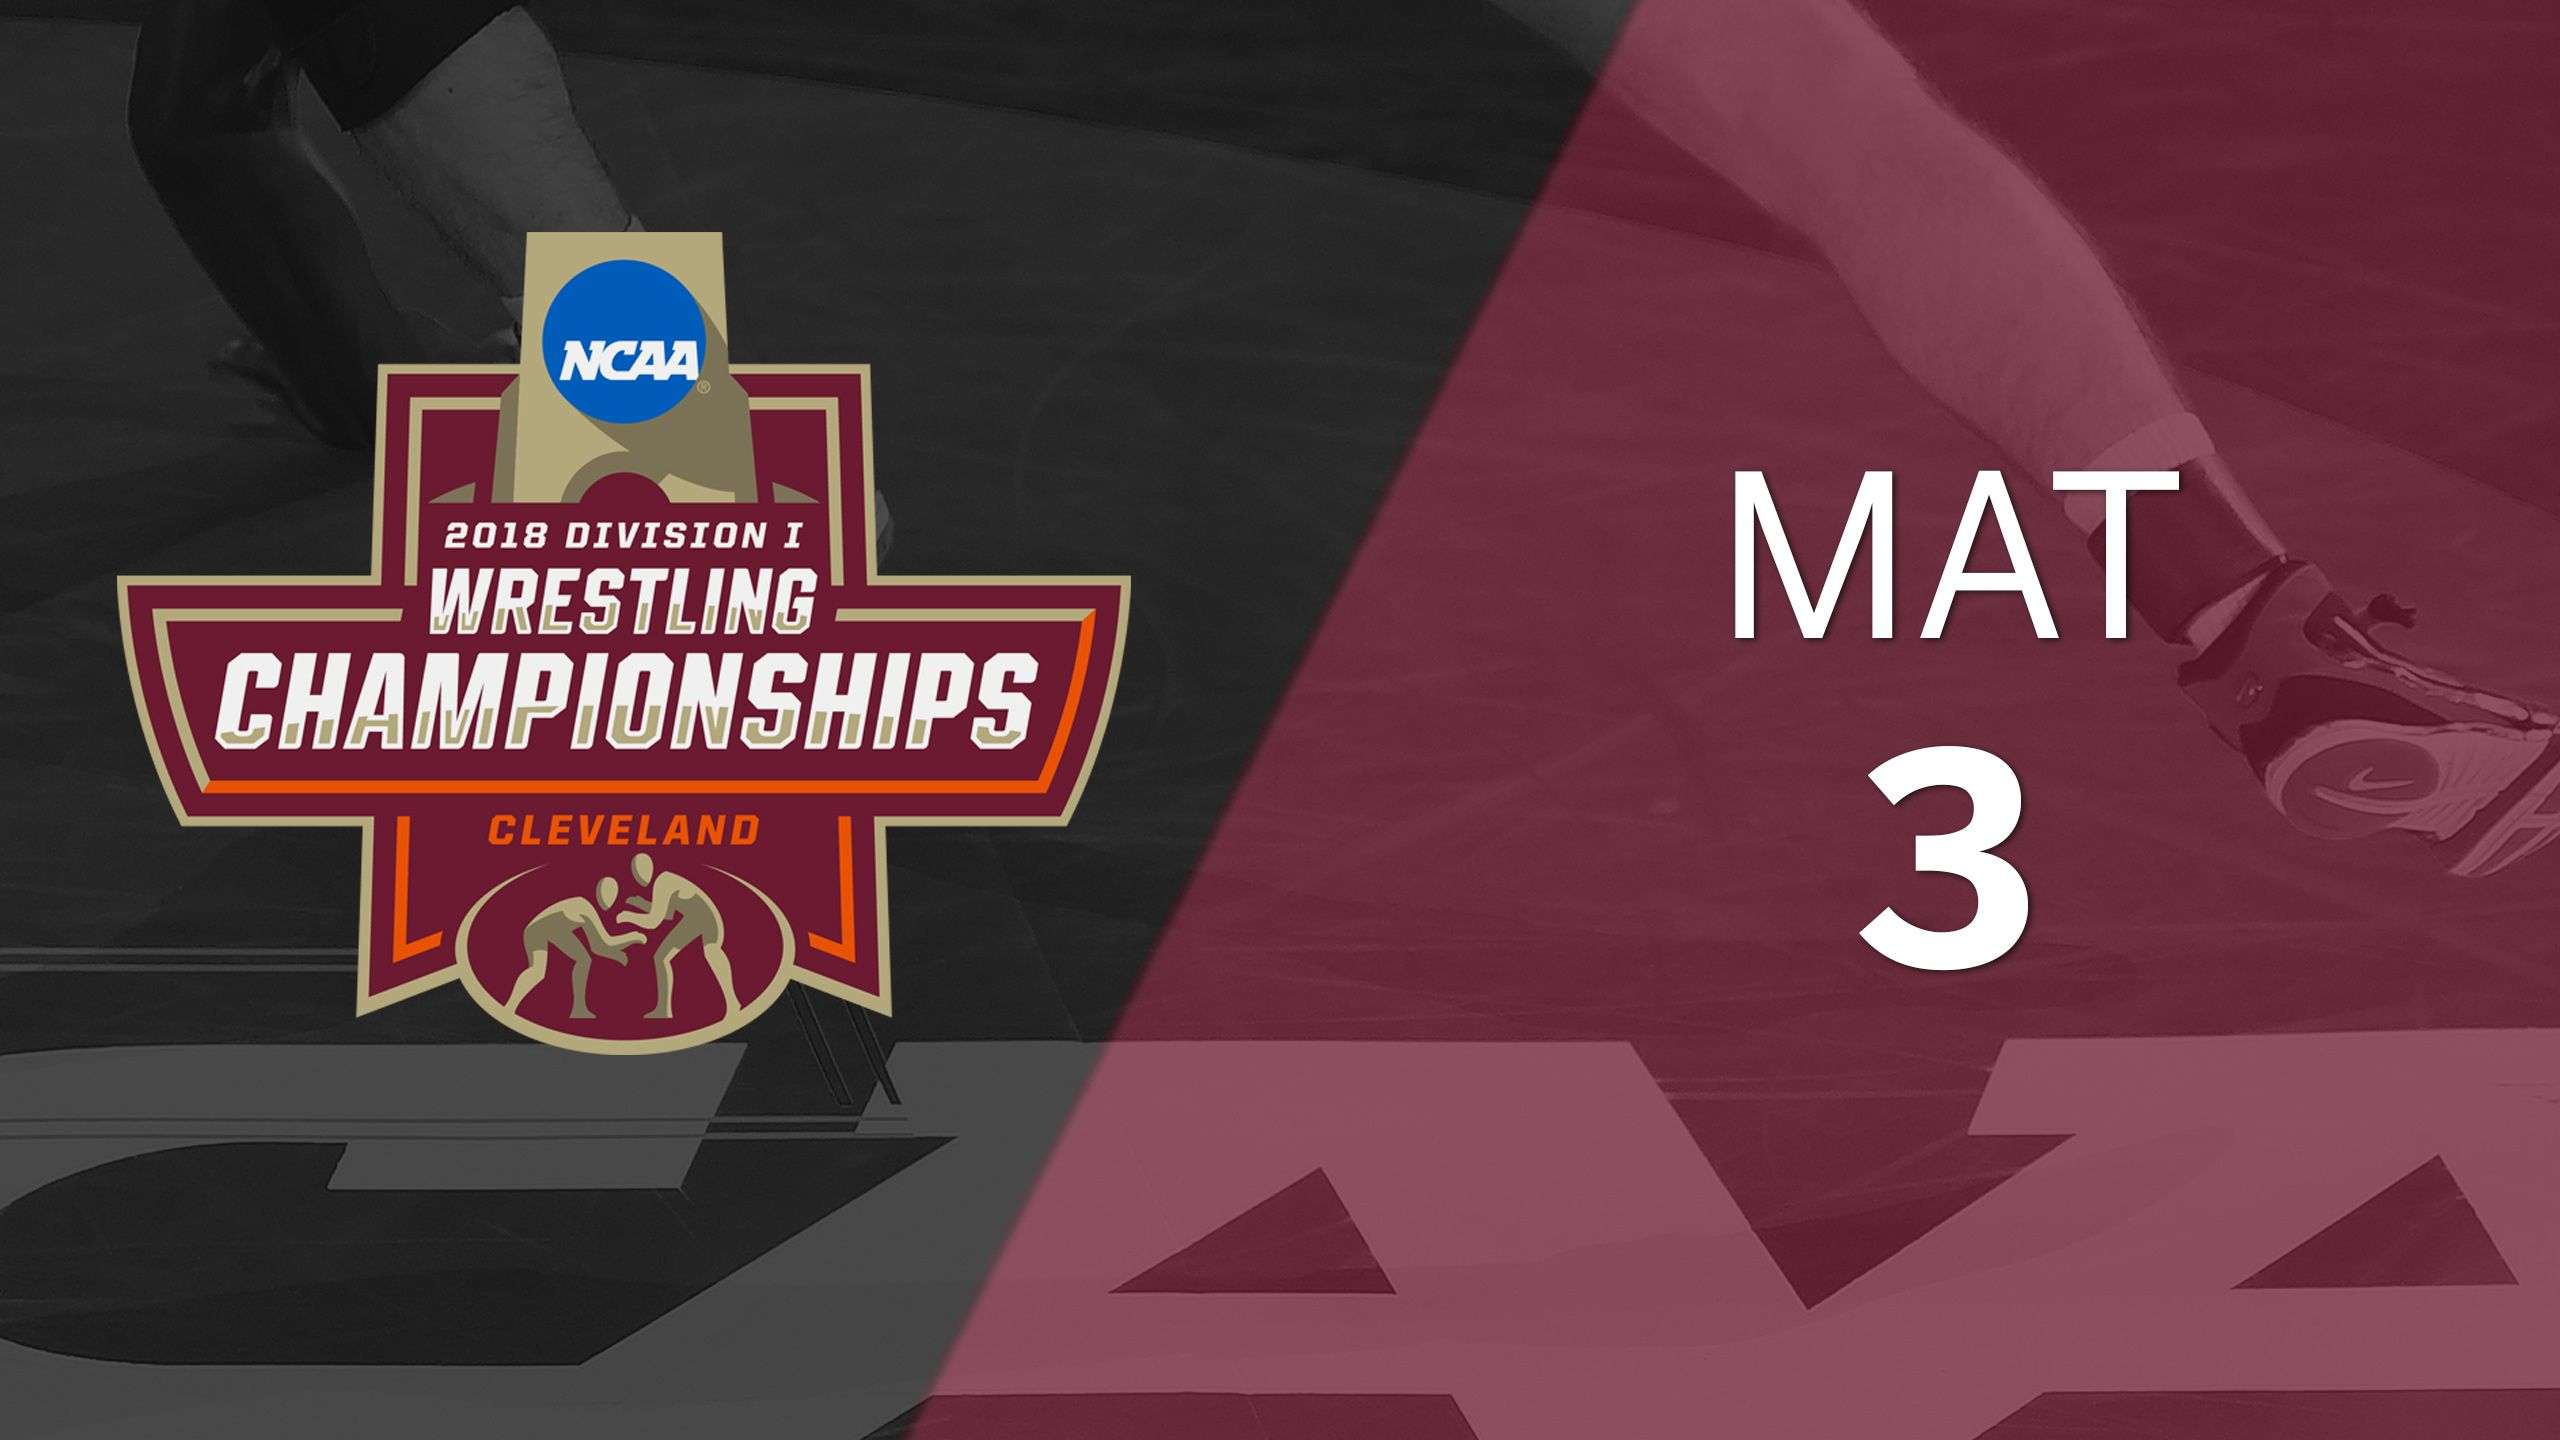 2018 NCAA Wrestling Championship (Mat 3, Medal Round)